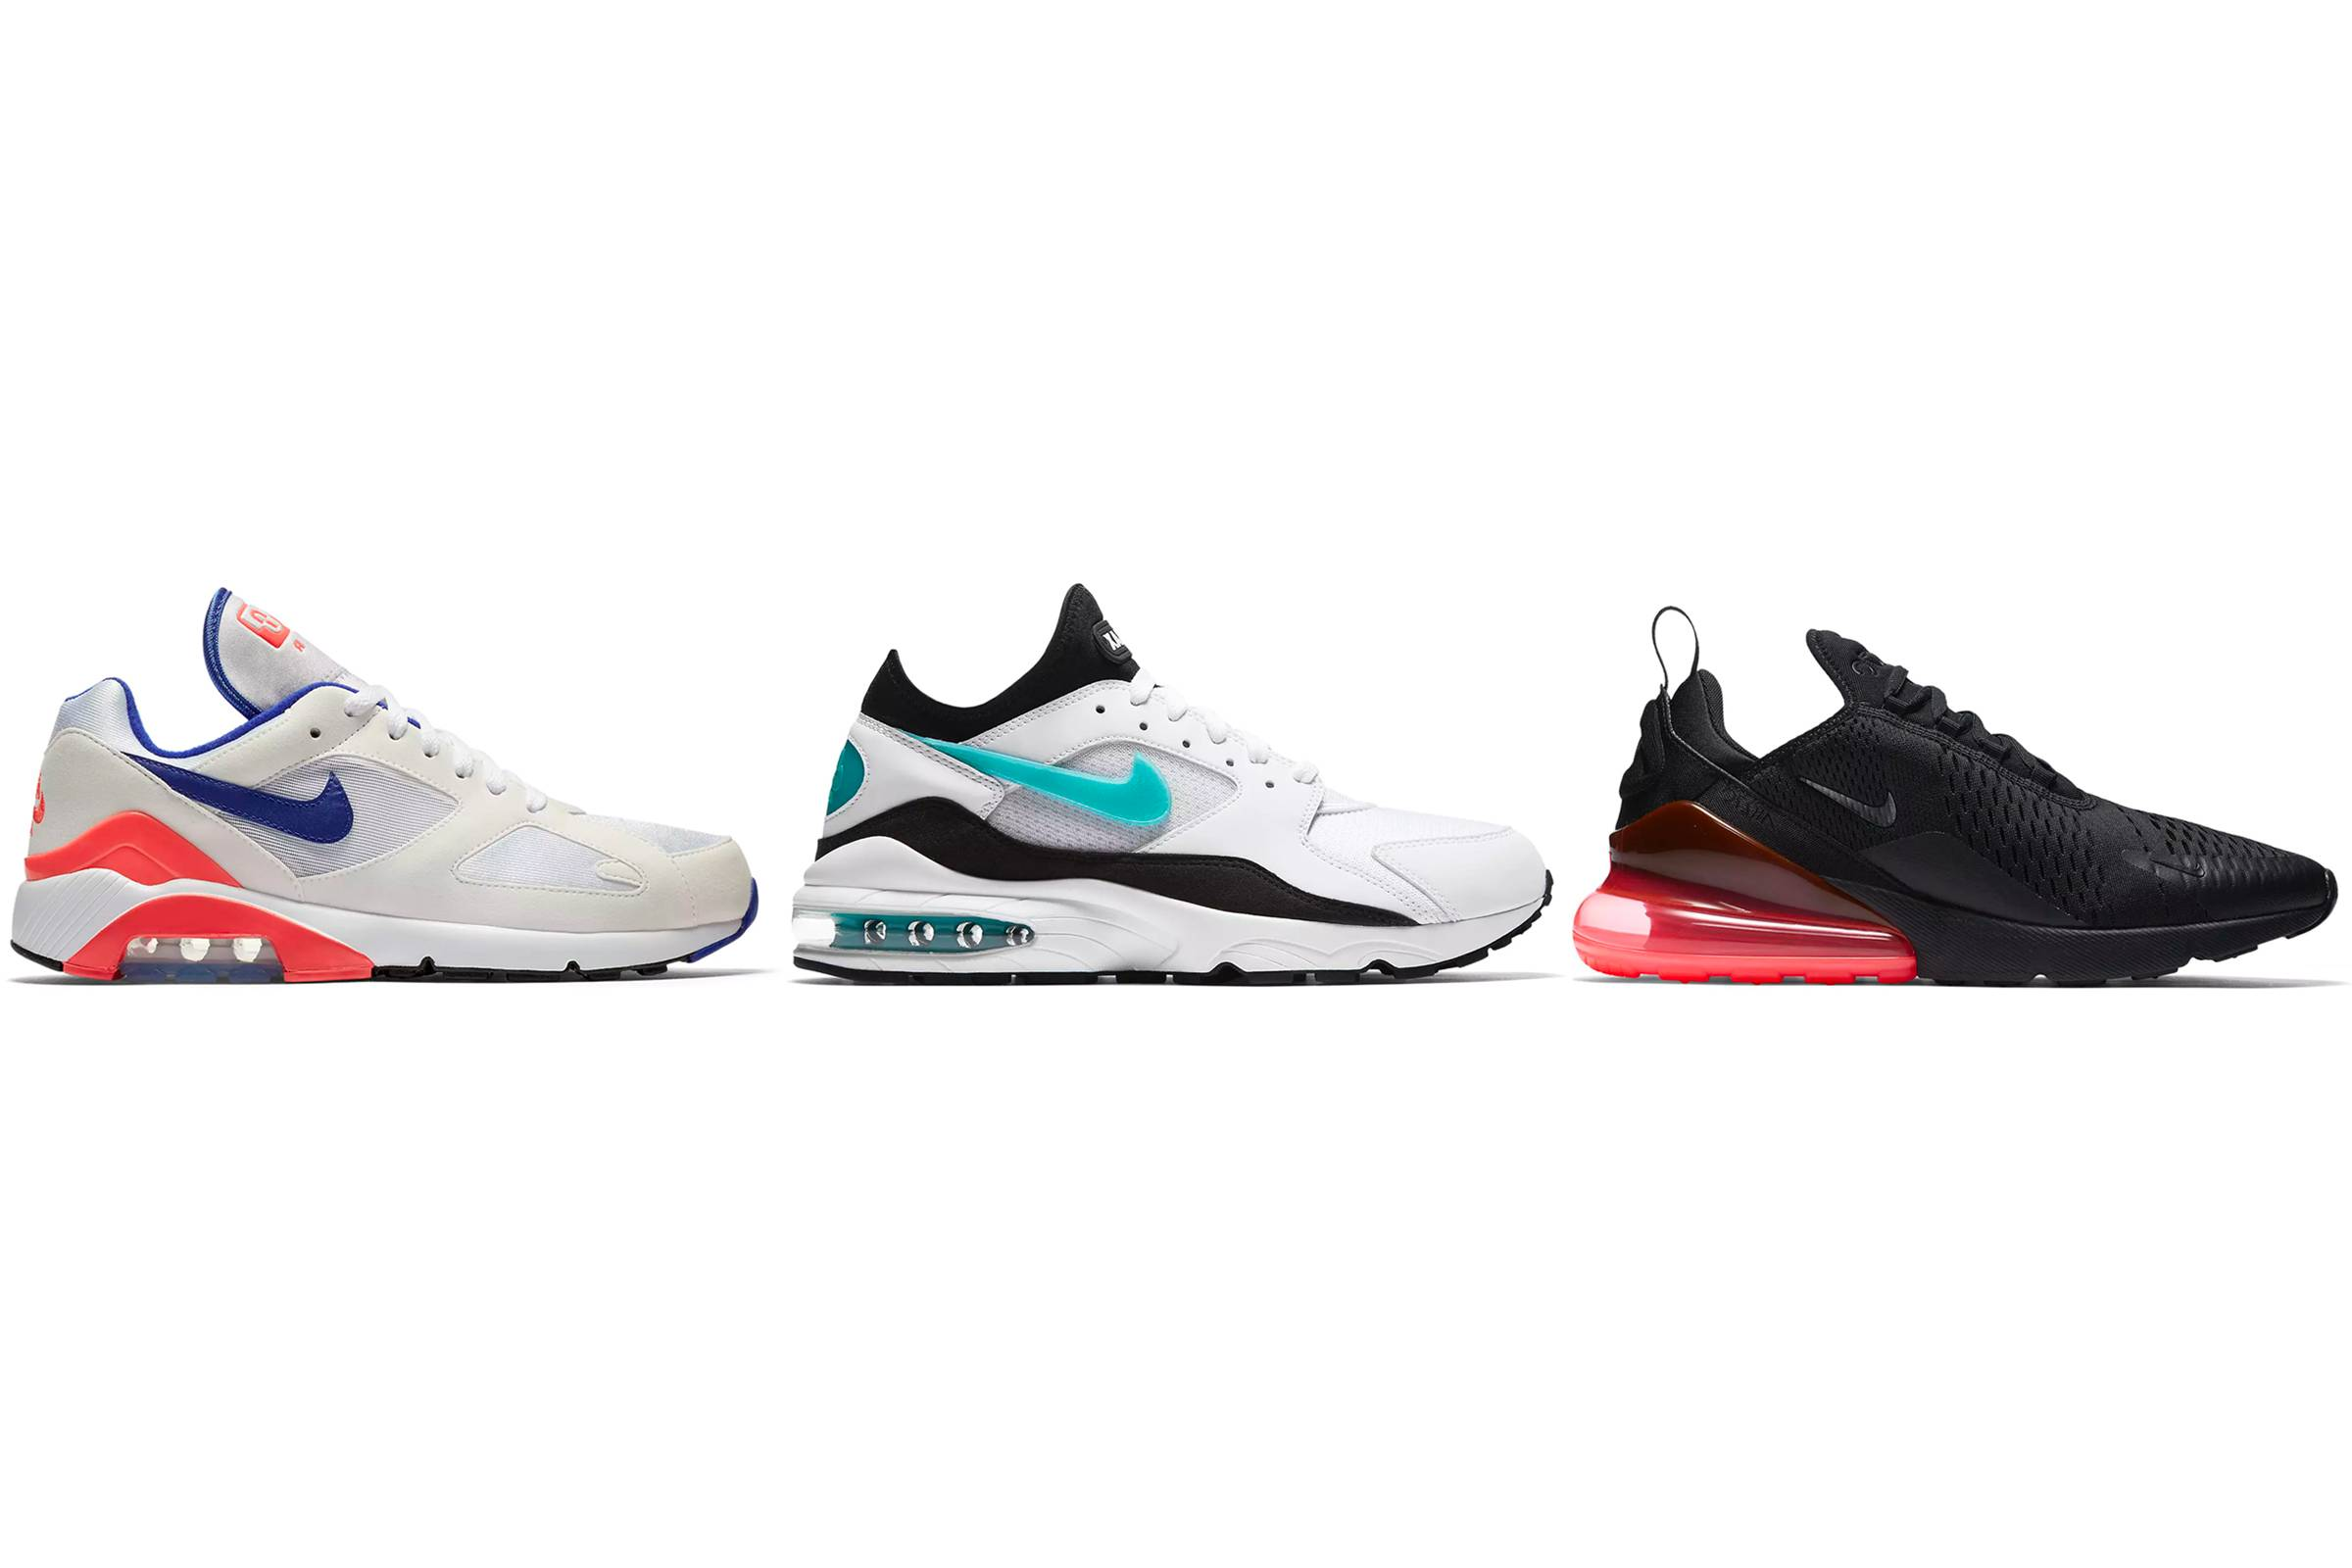 87c26574e Degrees of Air  The Evolution of the Air Max Heel Unit - Air Max 180 ...